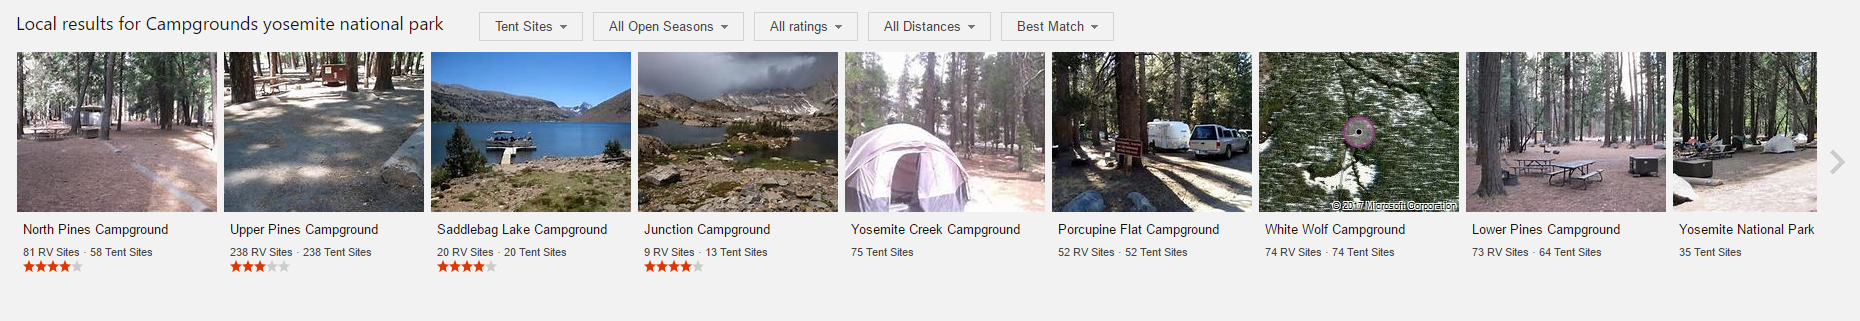 Yosemite National Park Campgrounds